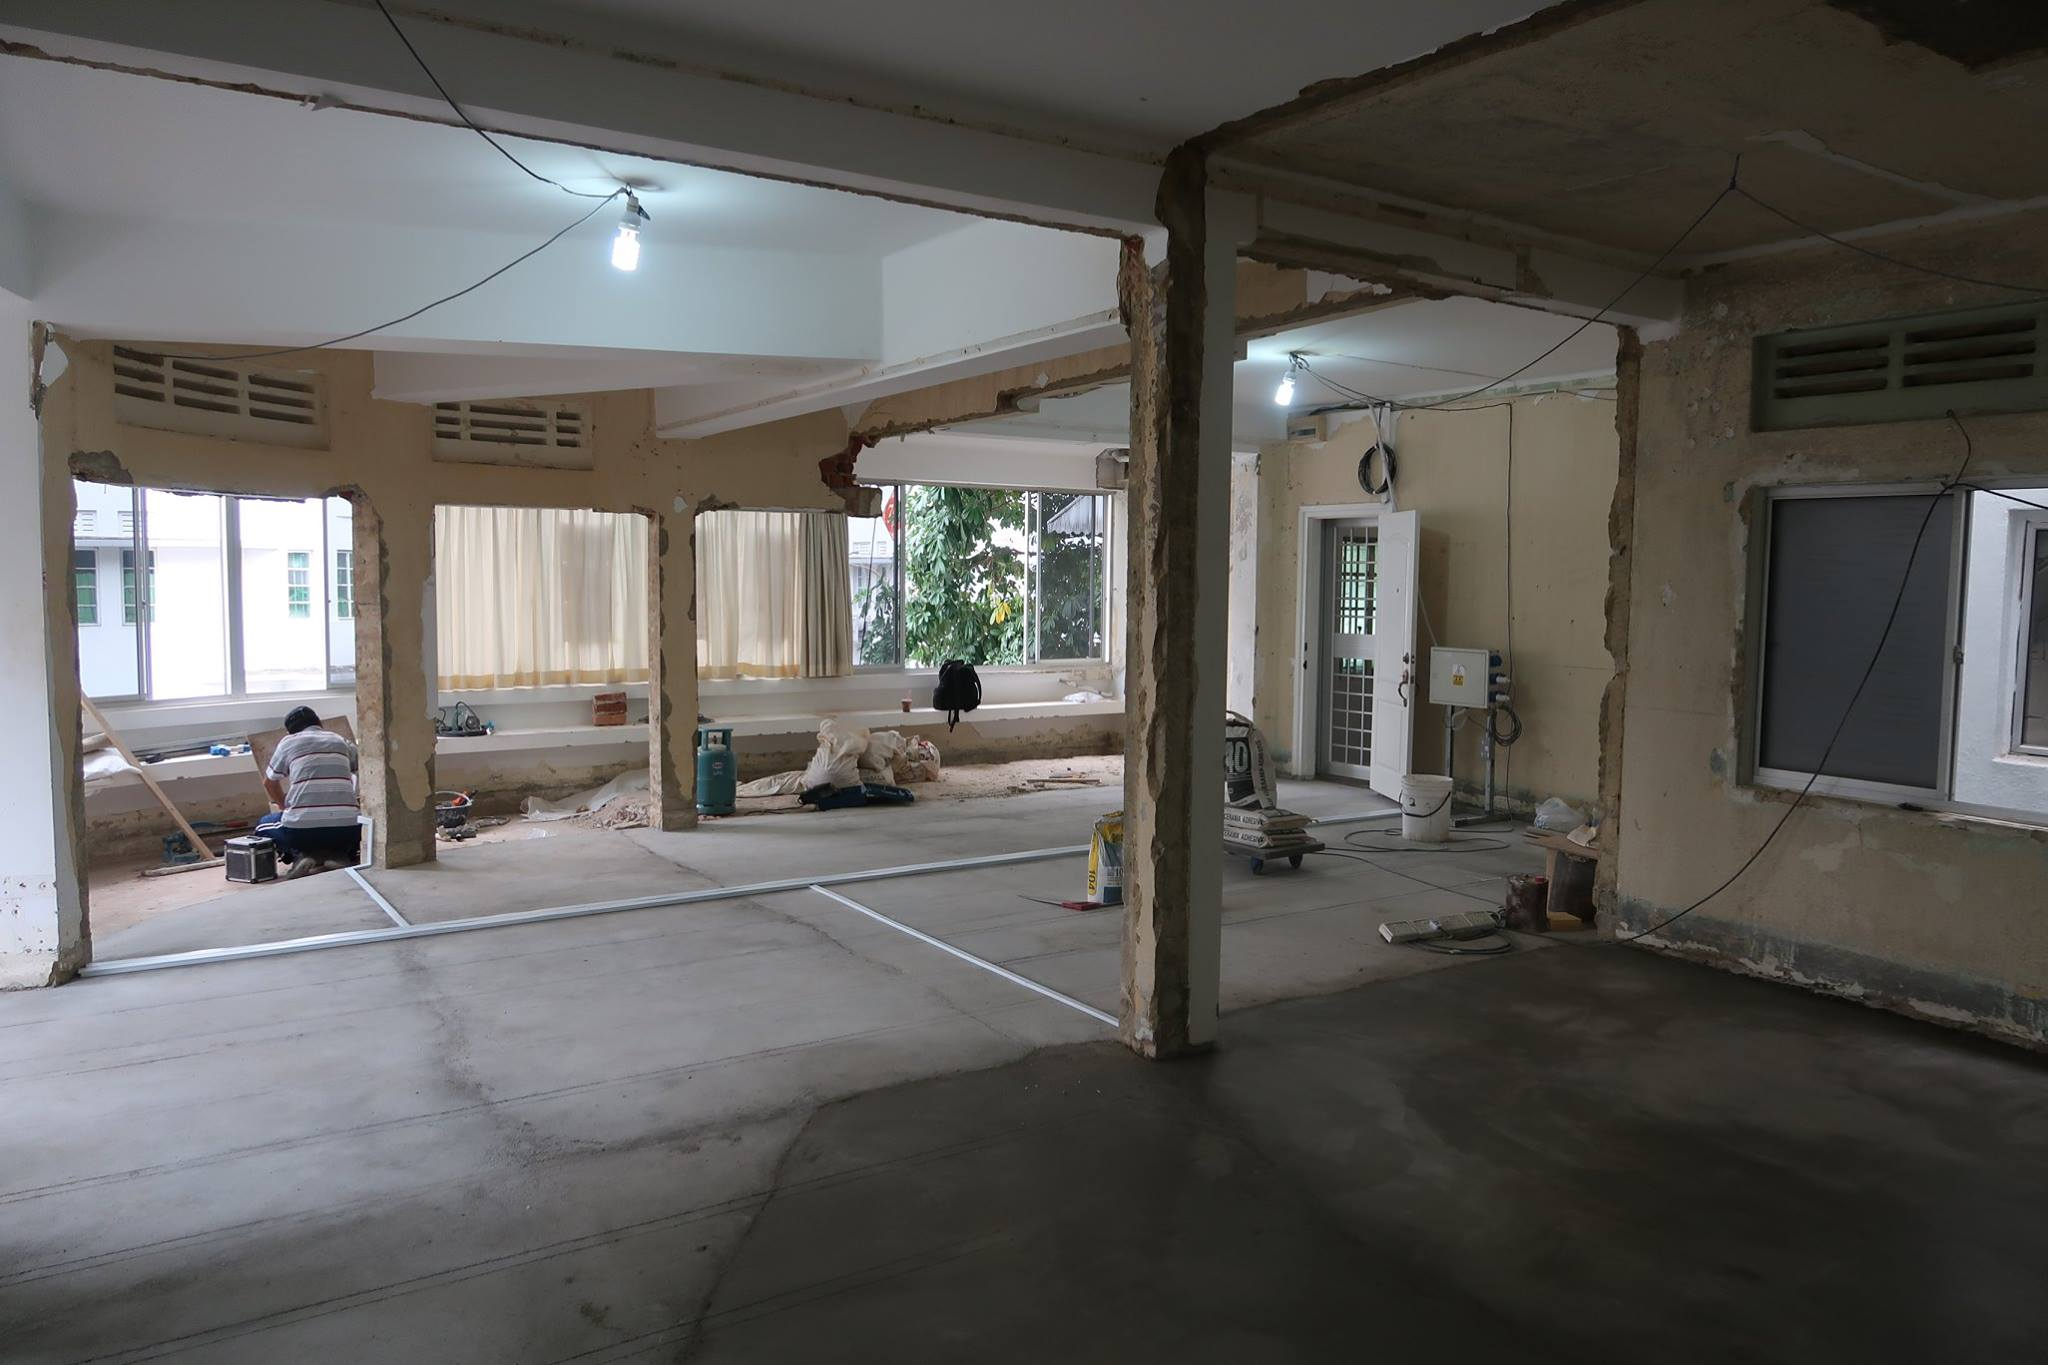 The interior view of Ed Poole's new space within the Tiong Bahru conservation estate (while it was being renovated). All Images: Ed Poole